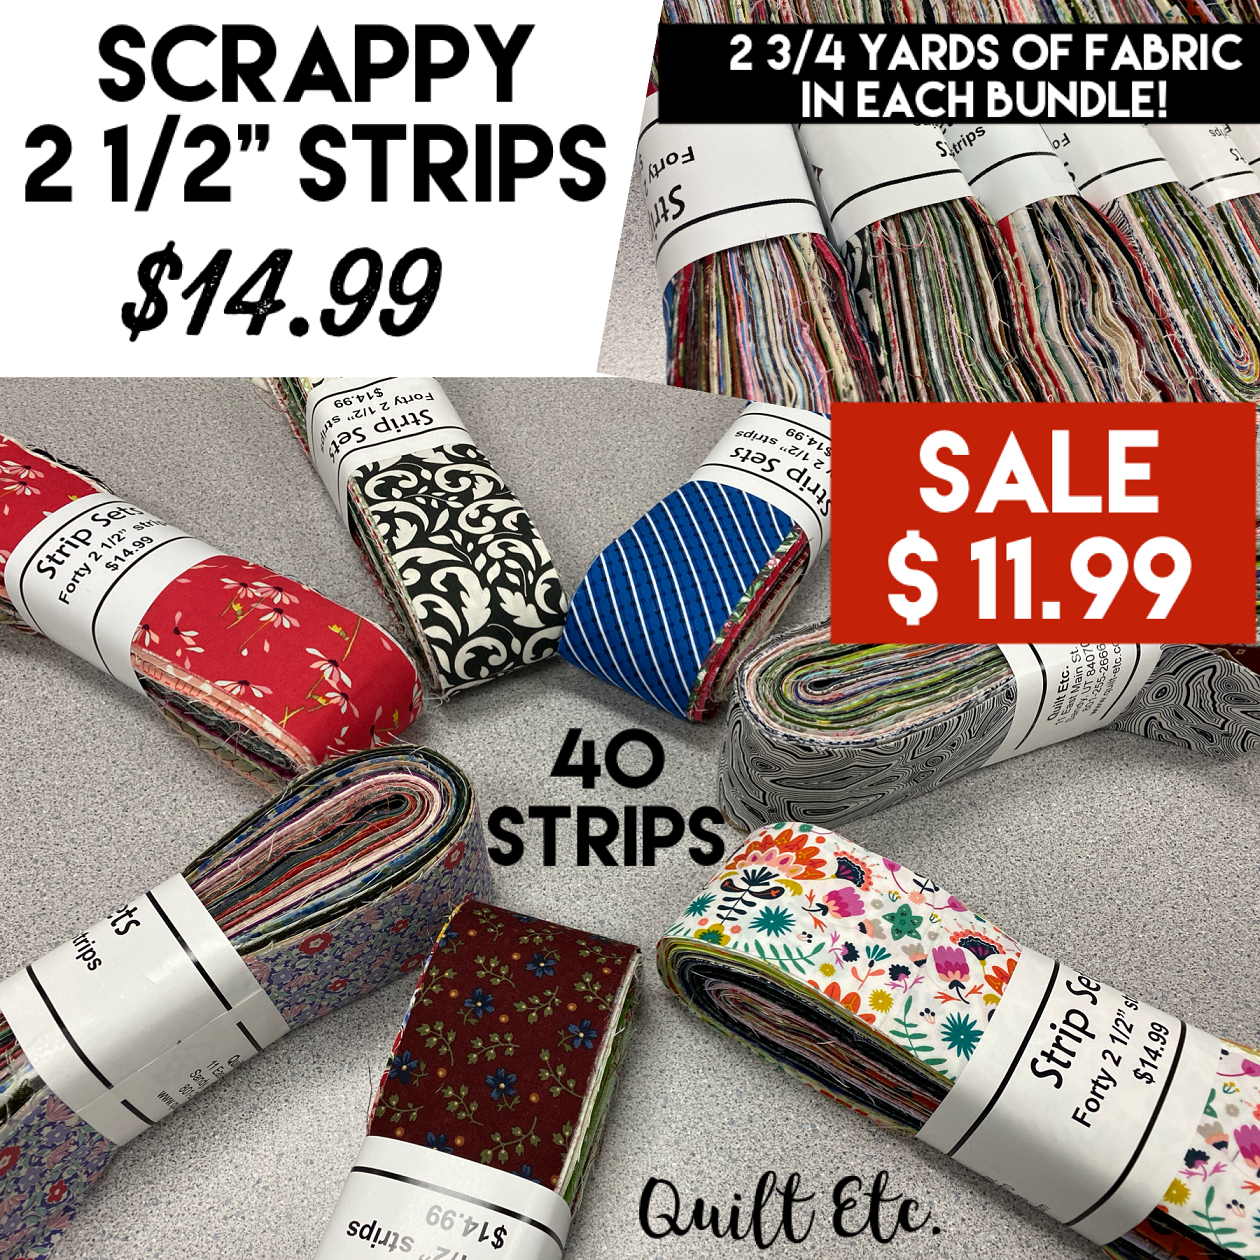 Scrappy 2 1/2 Strips